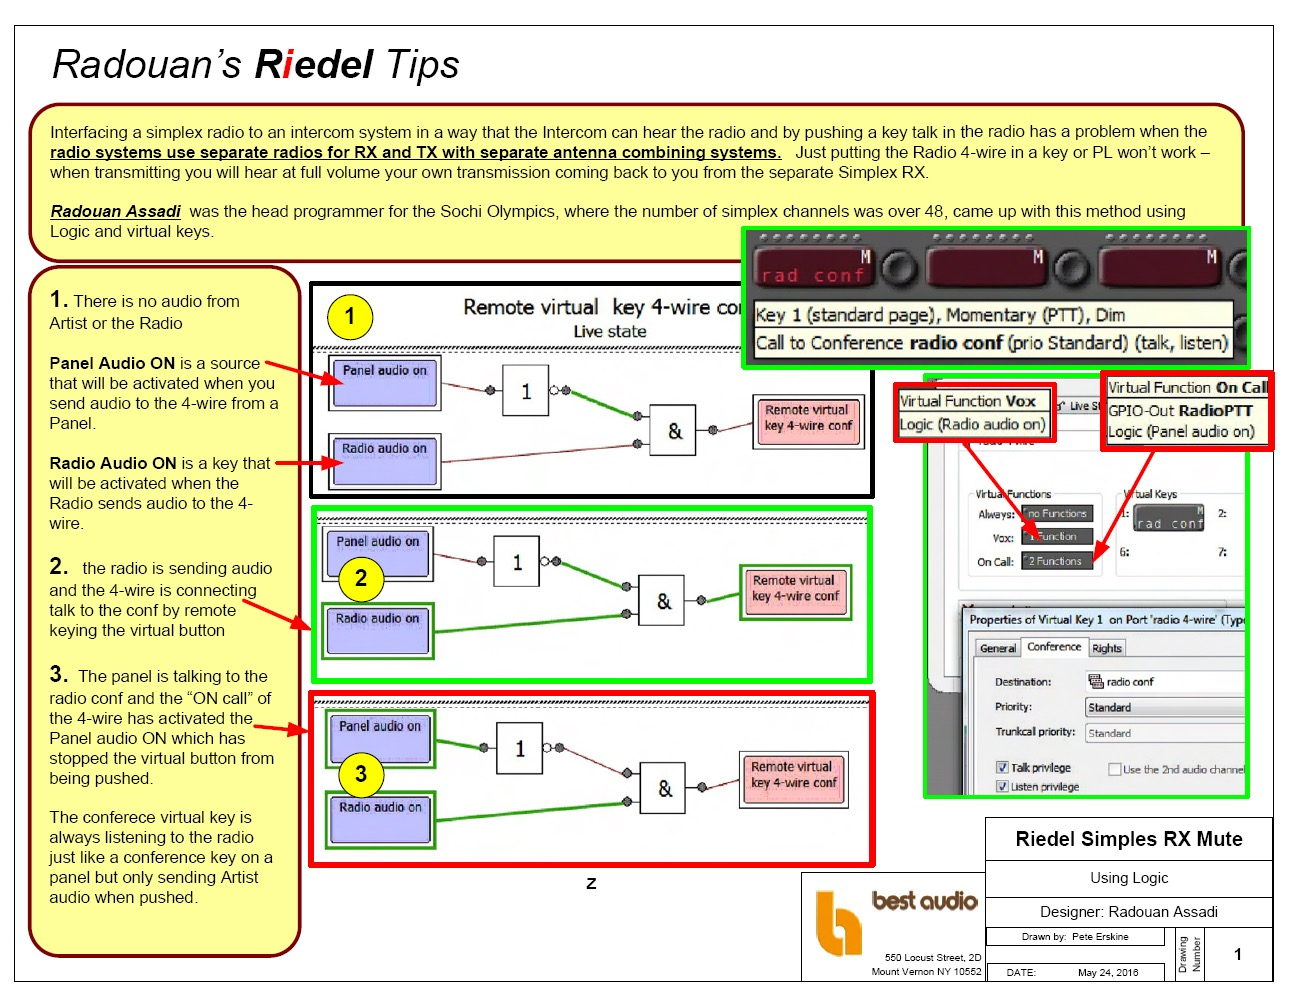 Rio Olympics With Riedel Communications Best Audio Wiring Panel We Used A Special Logic Program Devised By Radouan Which Muted The Rx Channel When Was Transmitting Otherwise You Would Hear Yourself Back